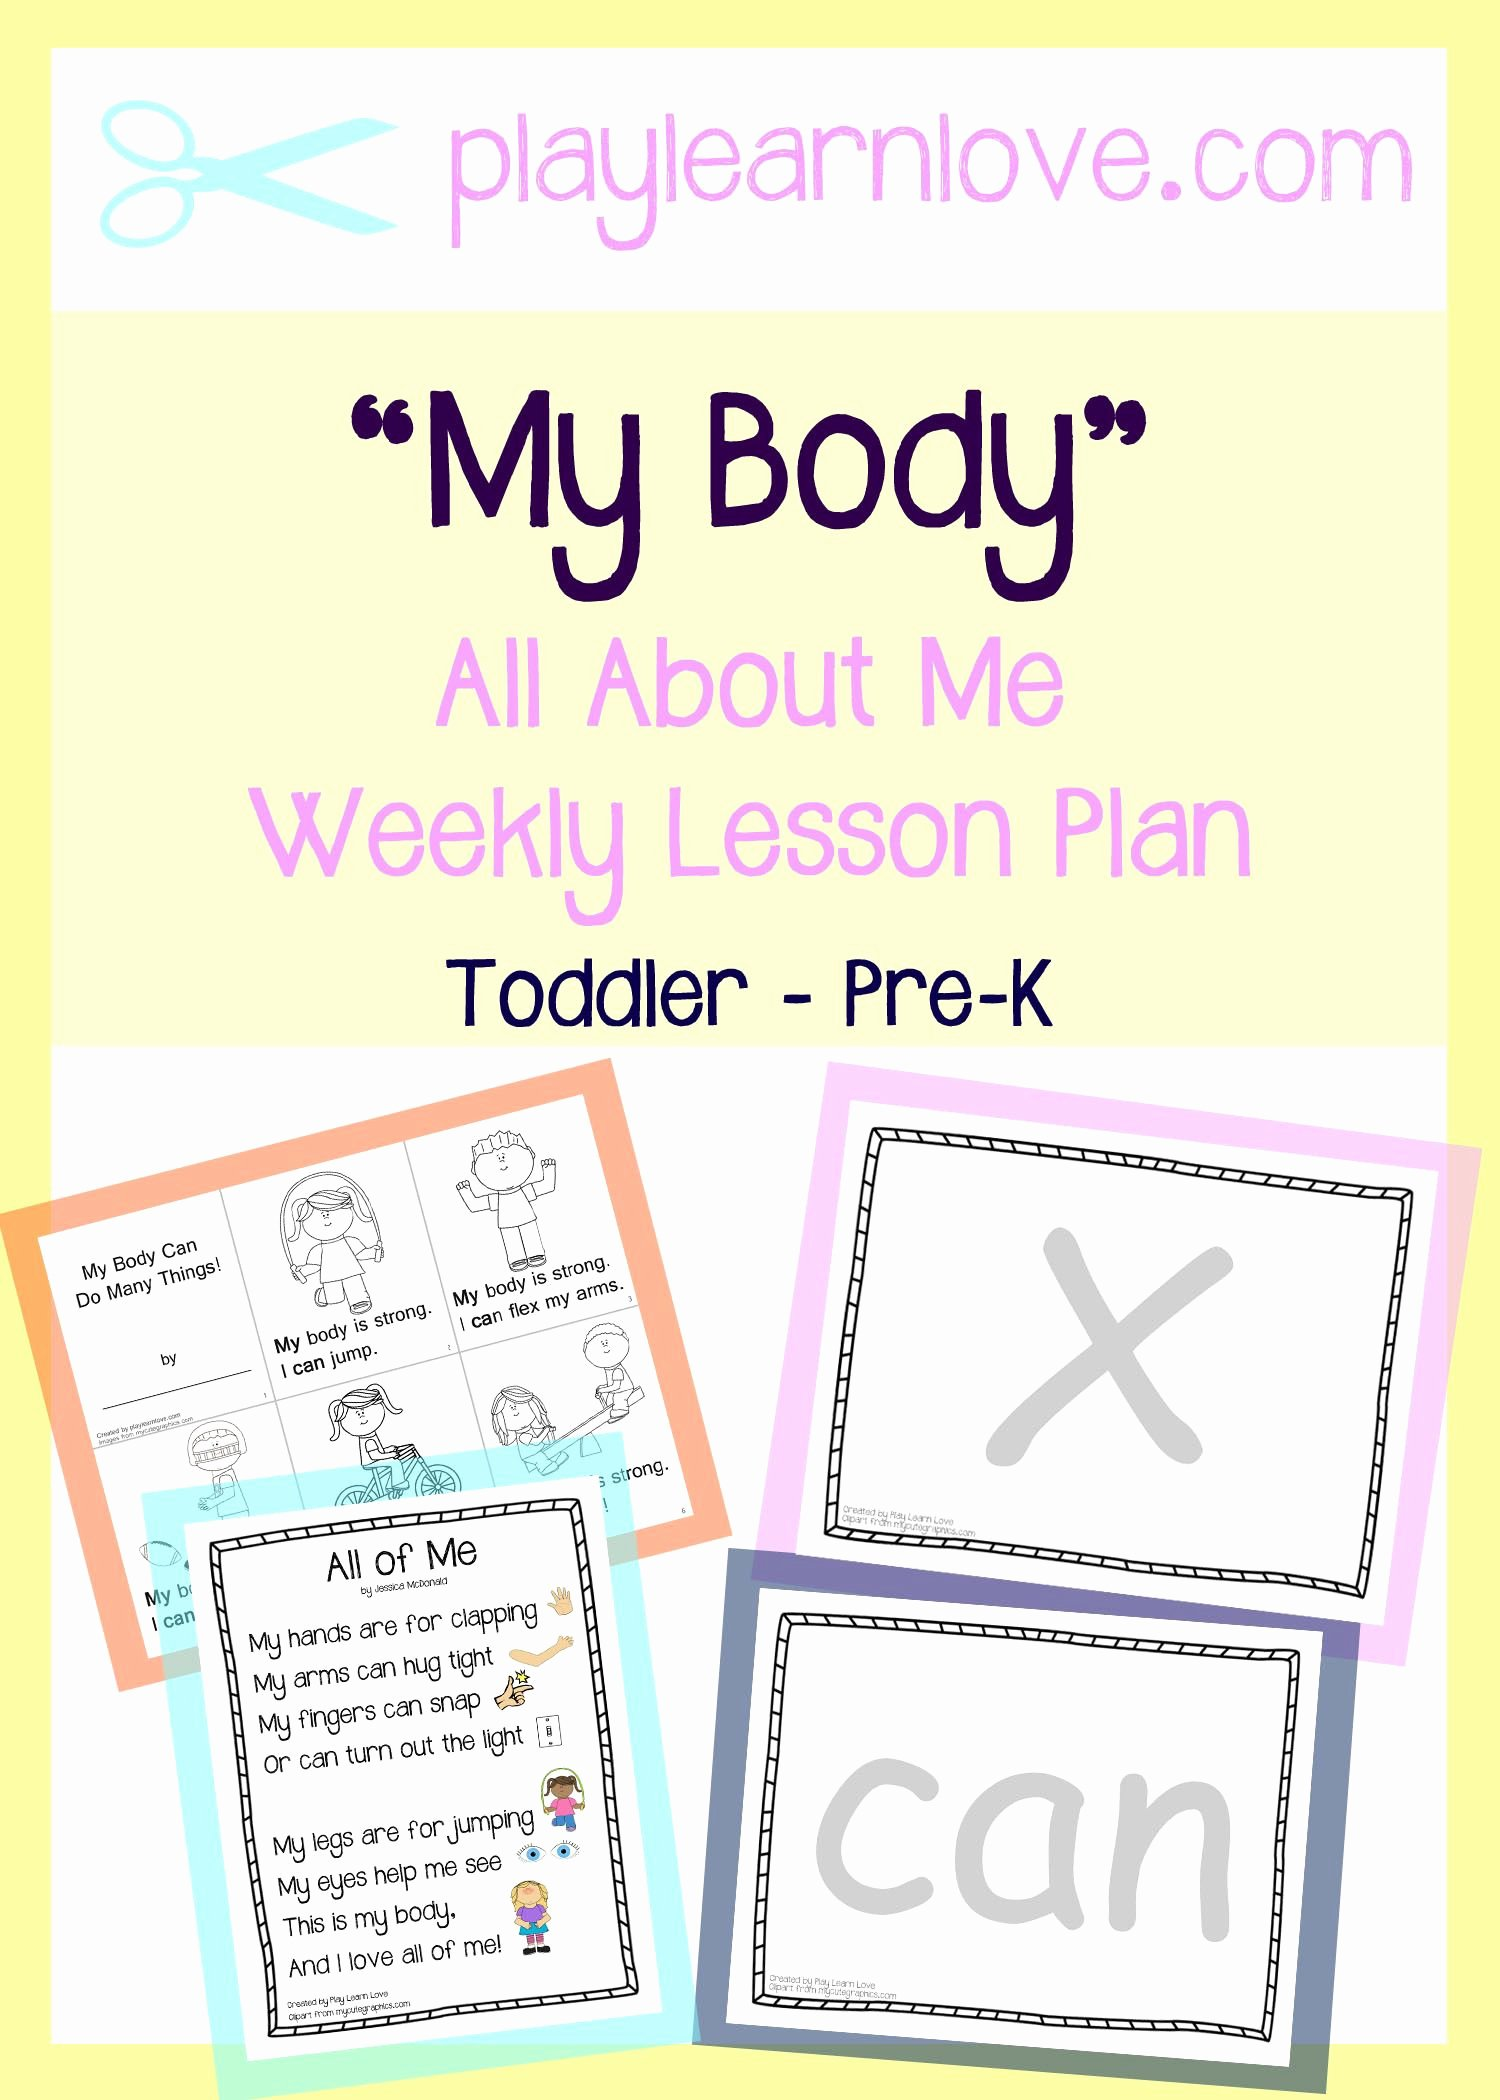 Lesson Plans for toddlers Inspirational All About Me My Body Lesson Plan From Play Learn Love